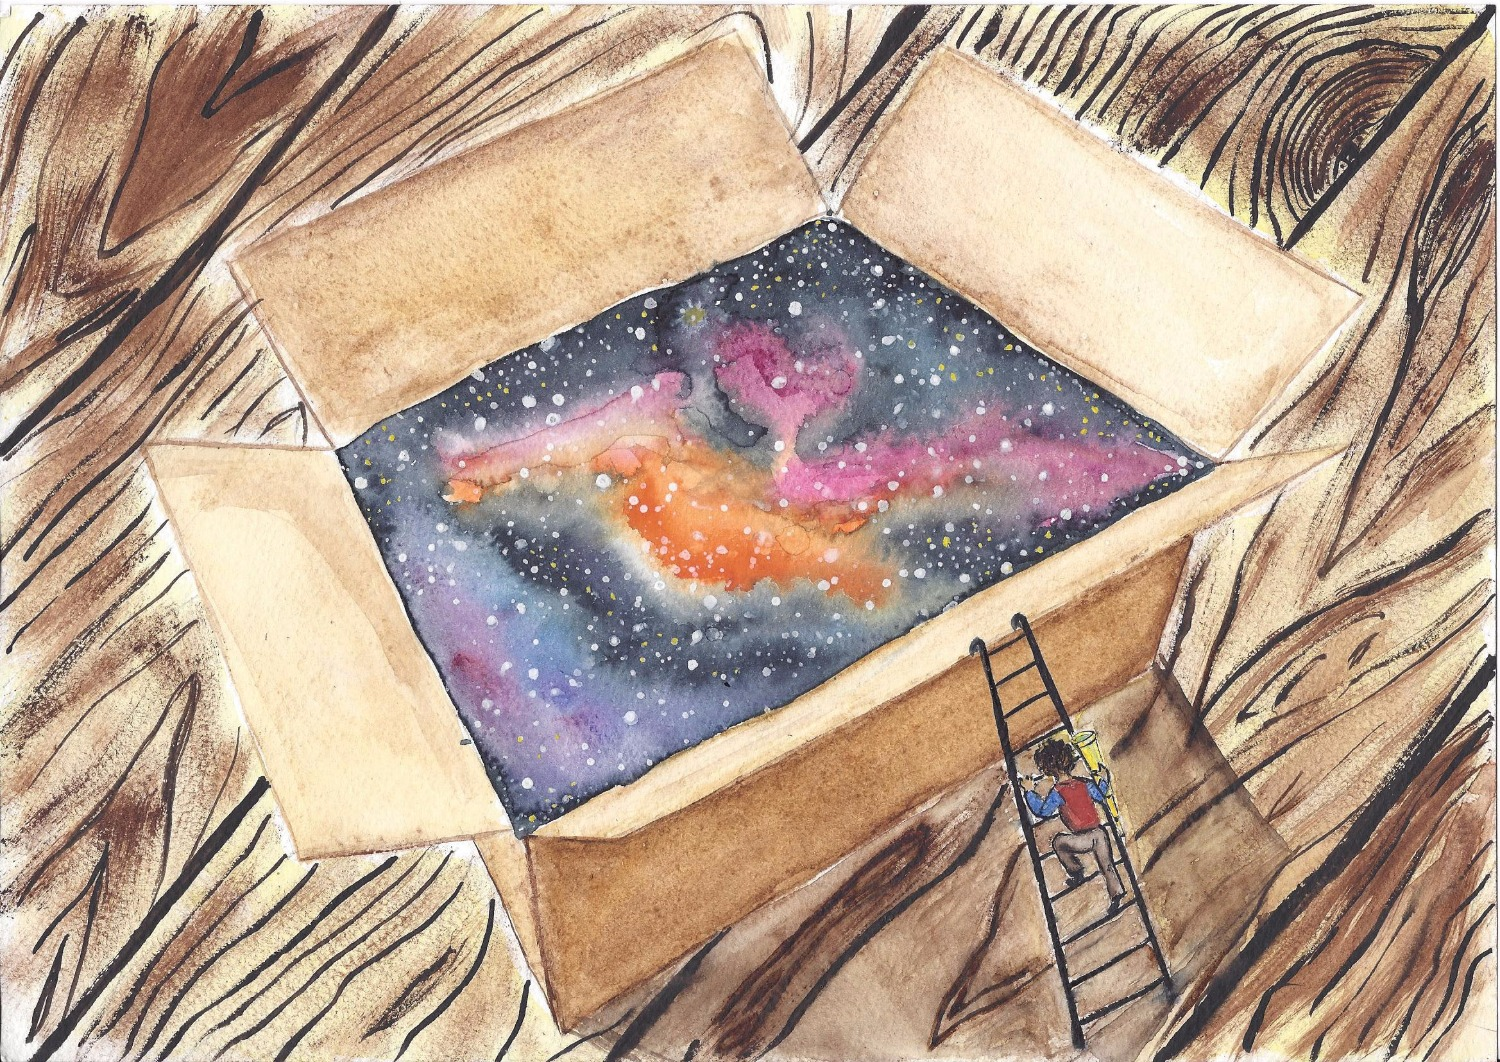 A Box artwork by Tonya Sheina